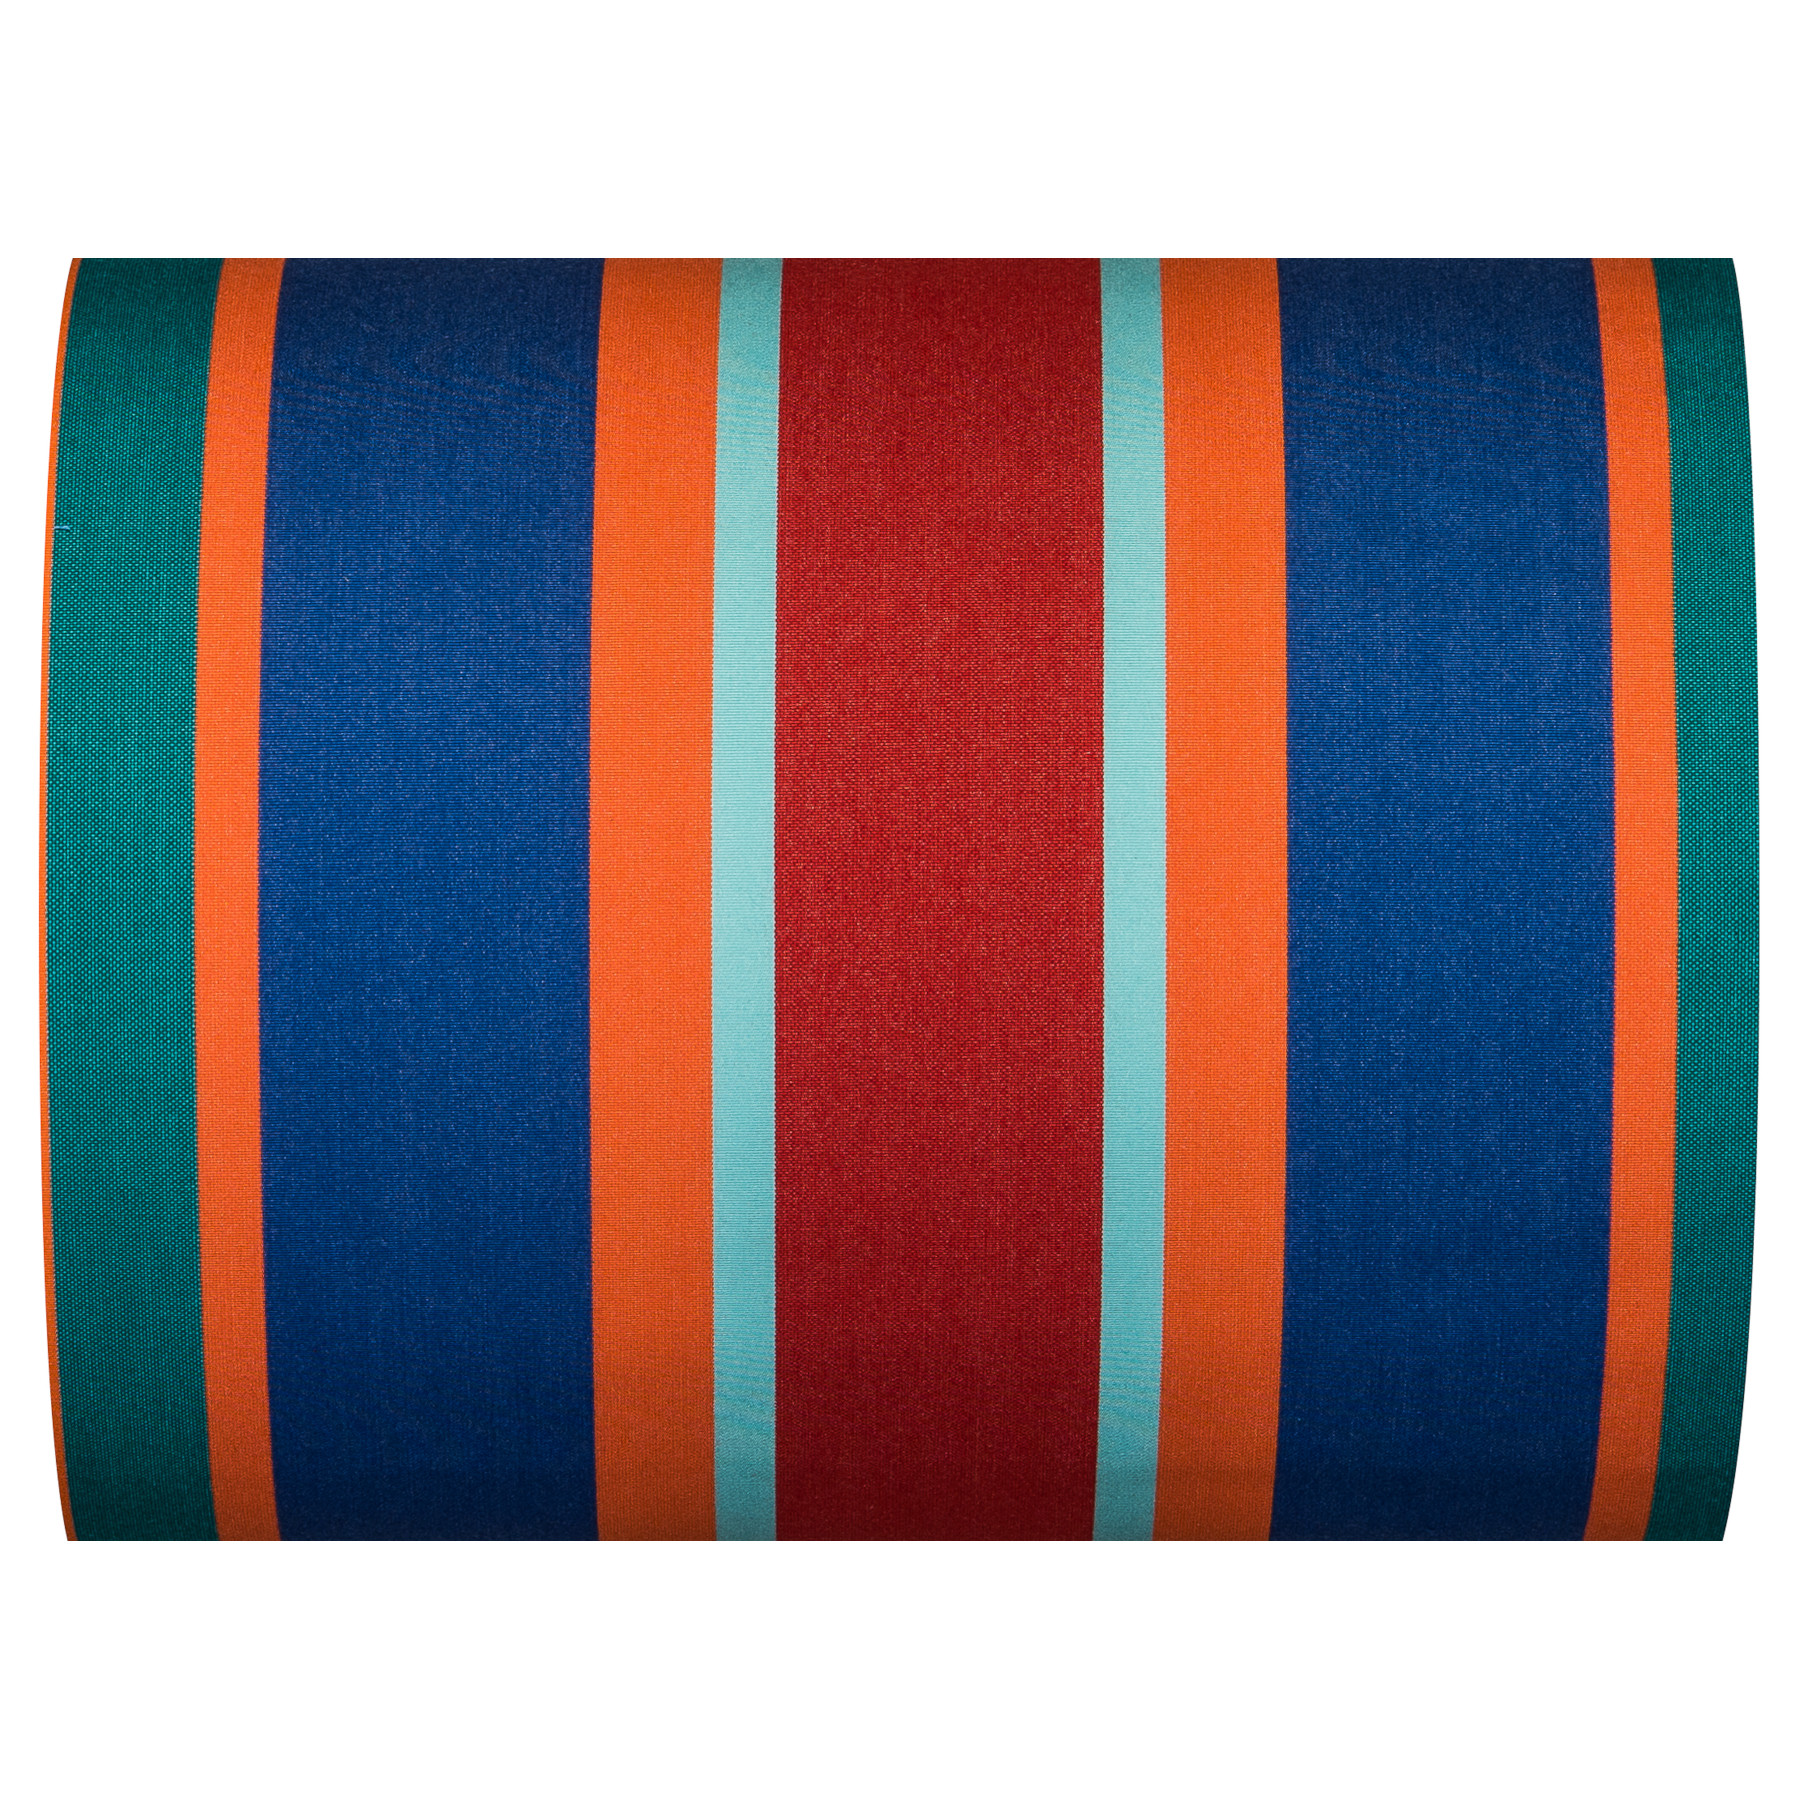 Fabric by the meter LES PLANCHES SUNBRELLA43cm